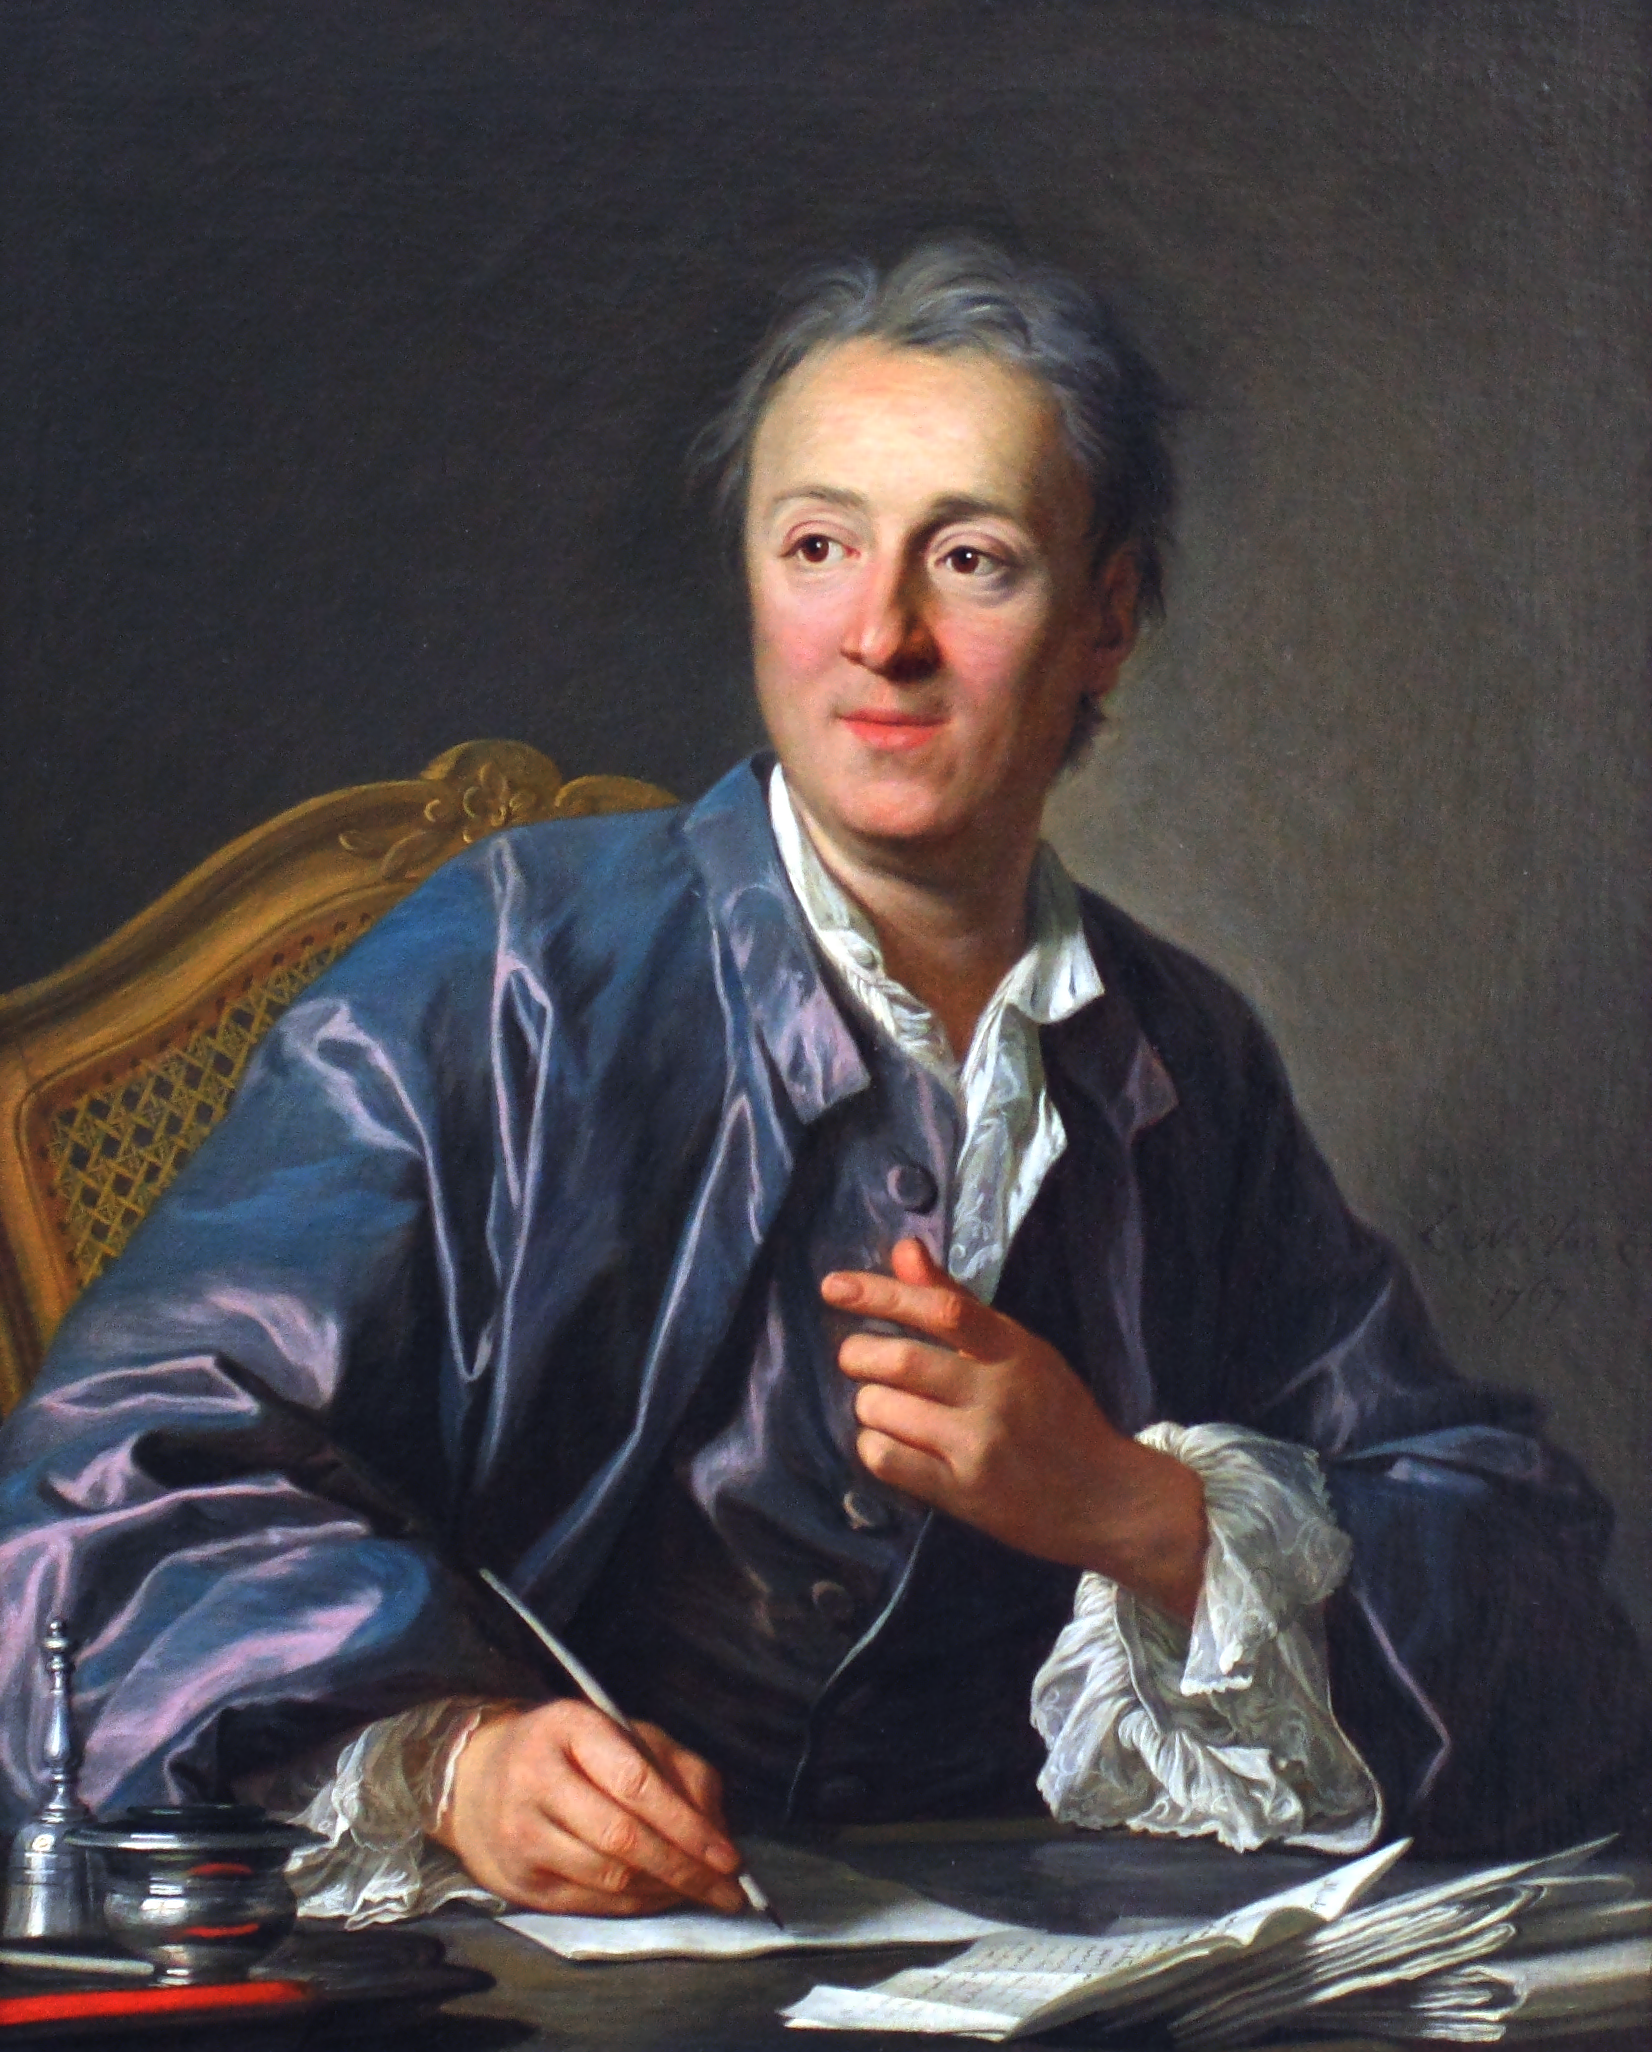 http://upload.wikimedia.org/wikipedia/commons/6/63/Denis_Diderot_111.PNG